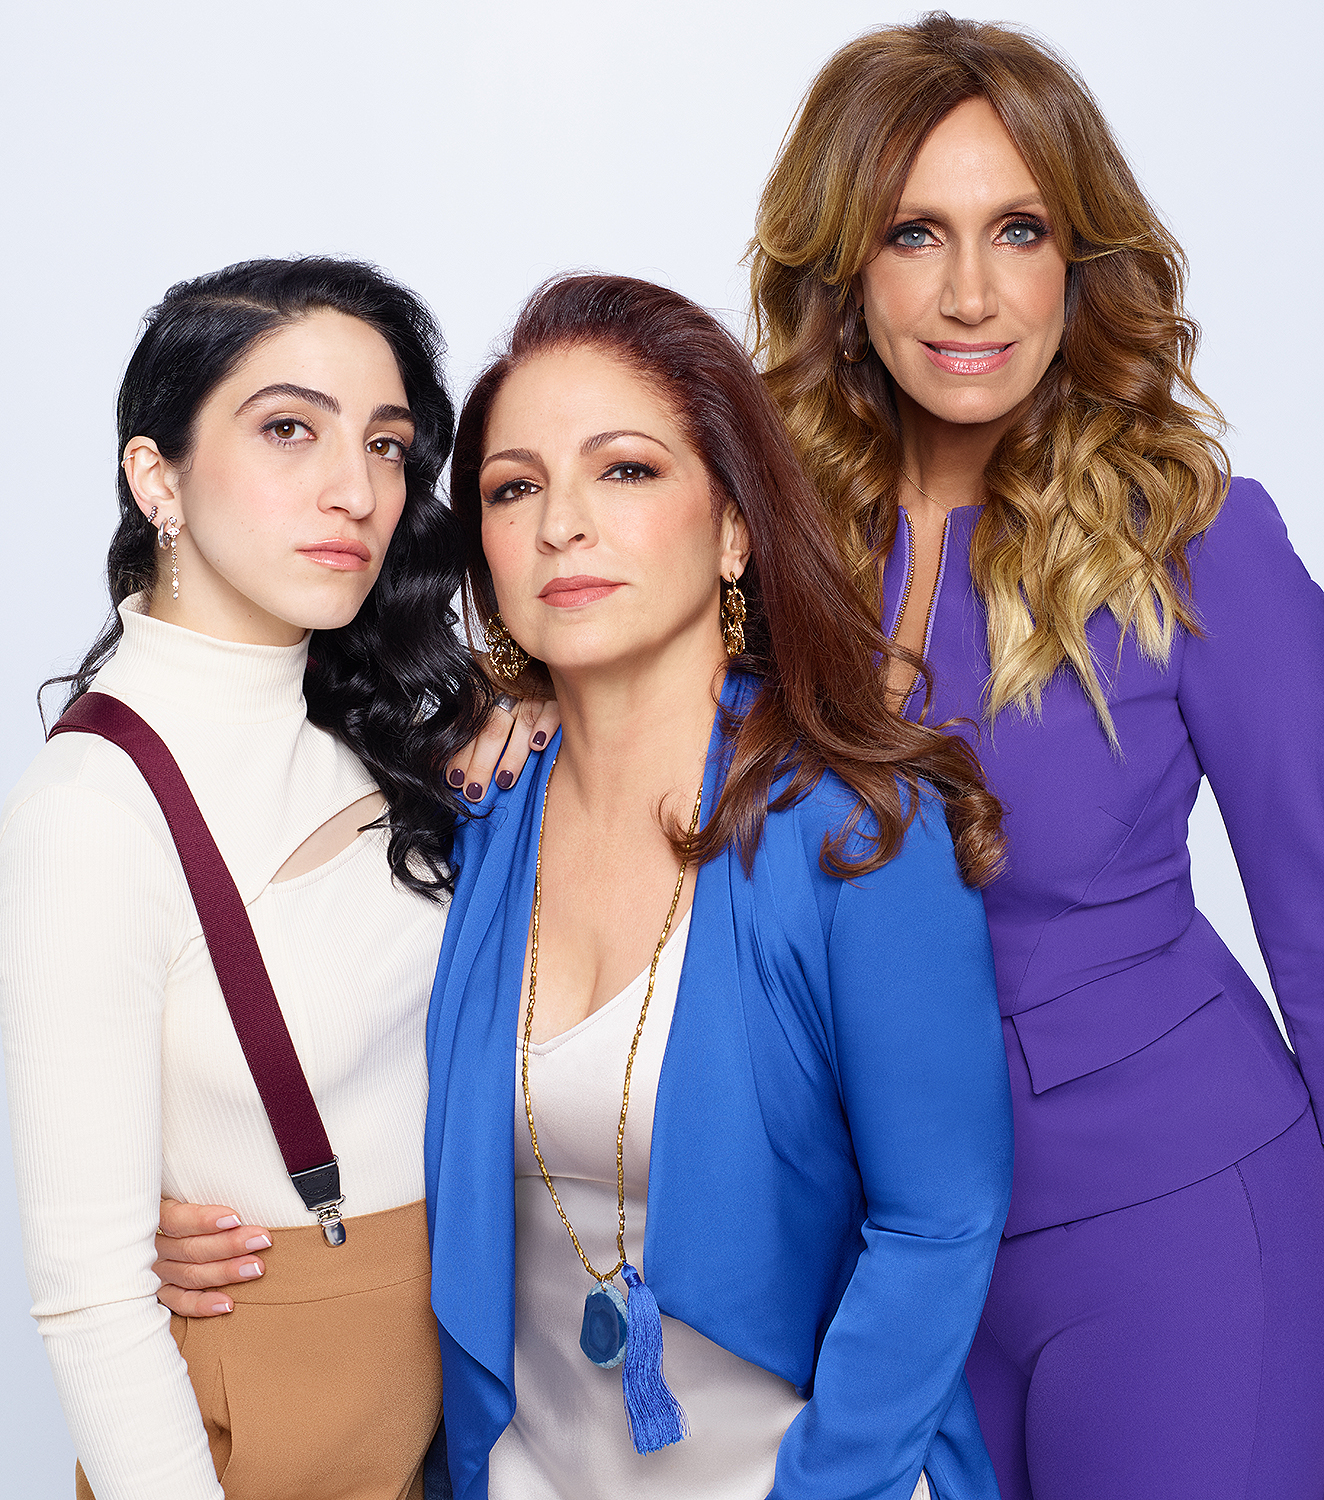 Emily, Gloria and Lili Estefan